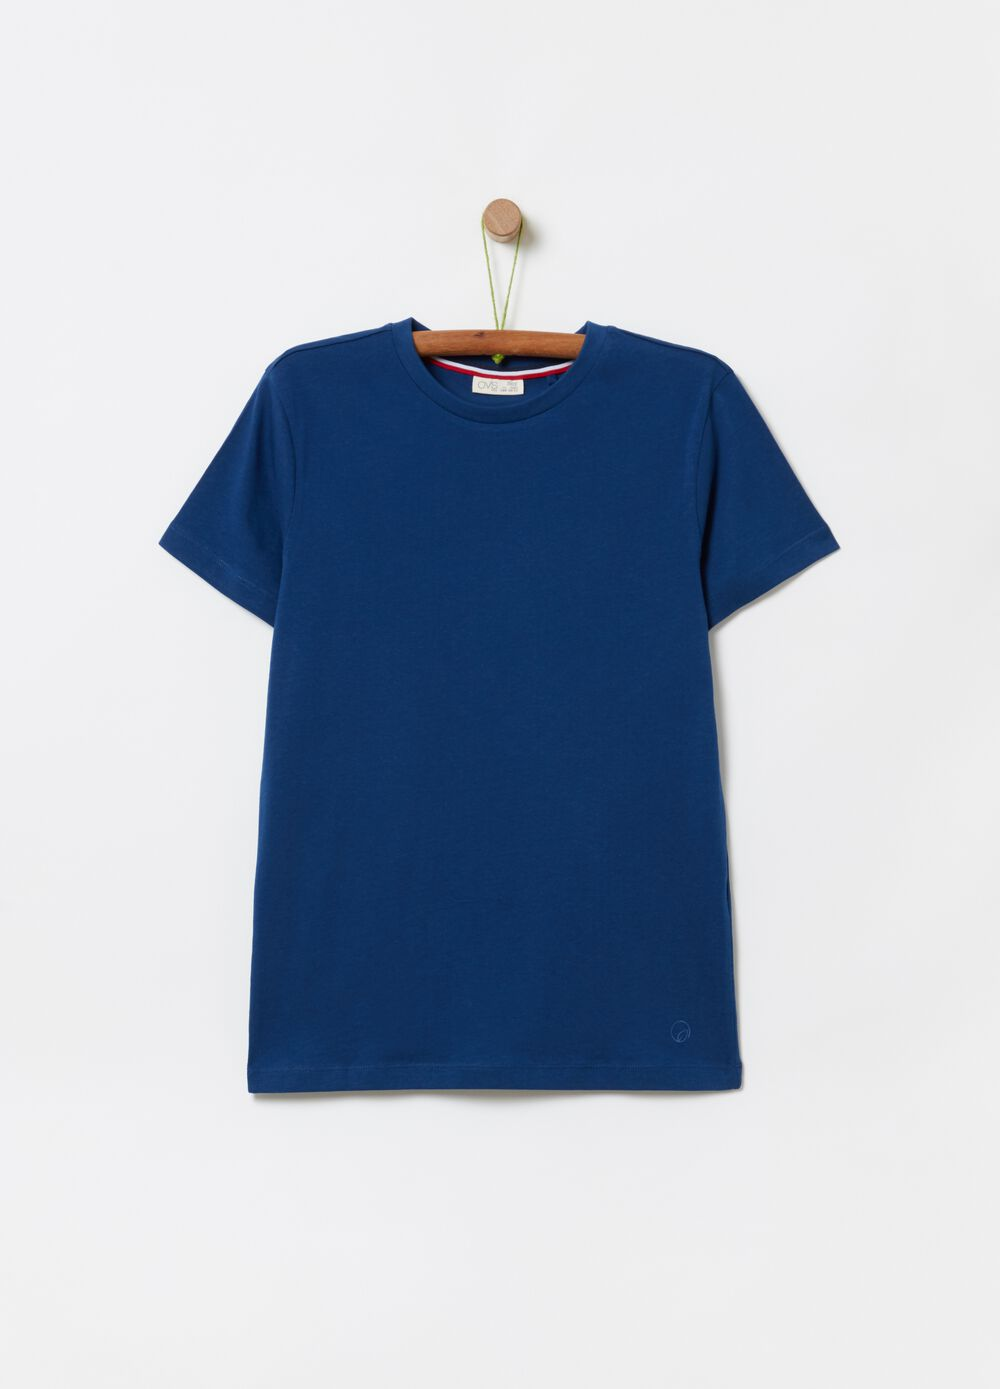 T-shirt in 100% organic cotton with round neck